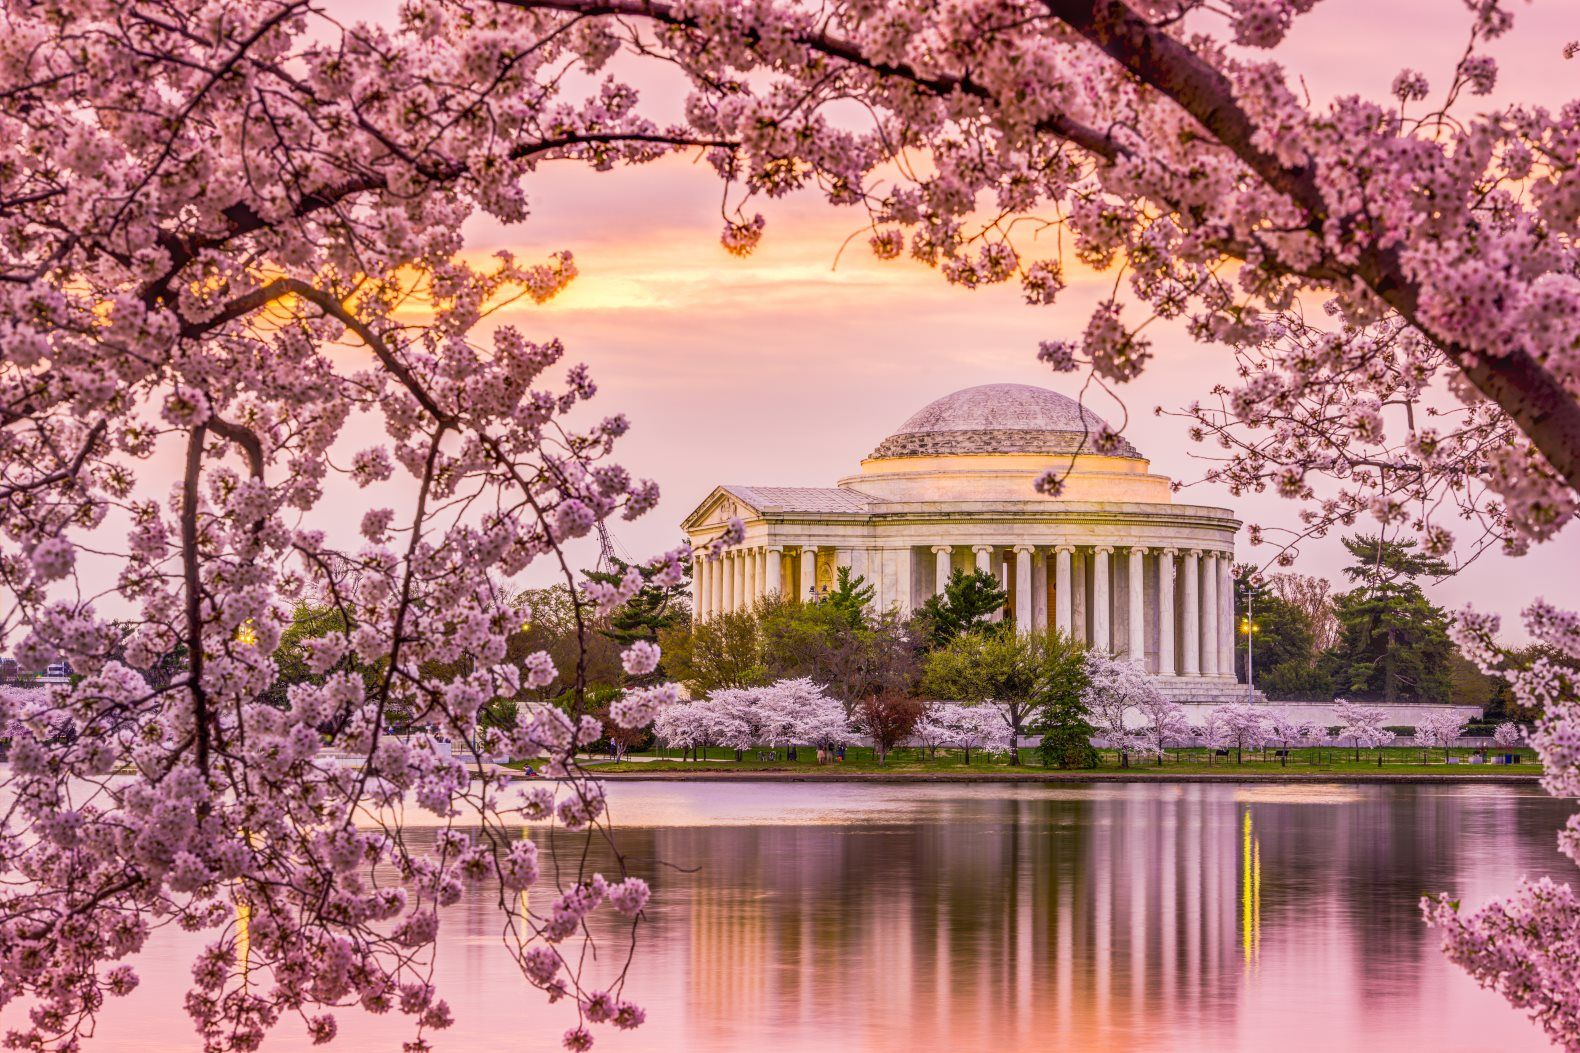 Climate Change Is Causing Spring To Come Earlier In National Parks Cherry Blossom Festival Dc Cherry Blossom Pictures Cherry Blossom Festival